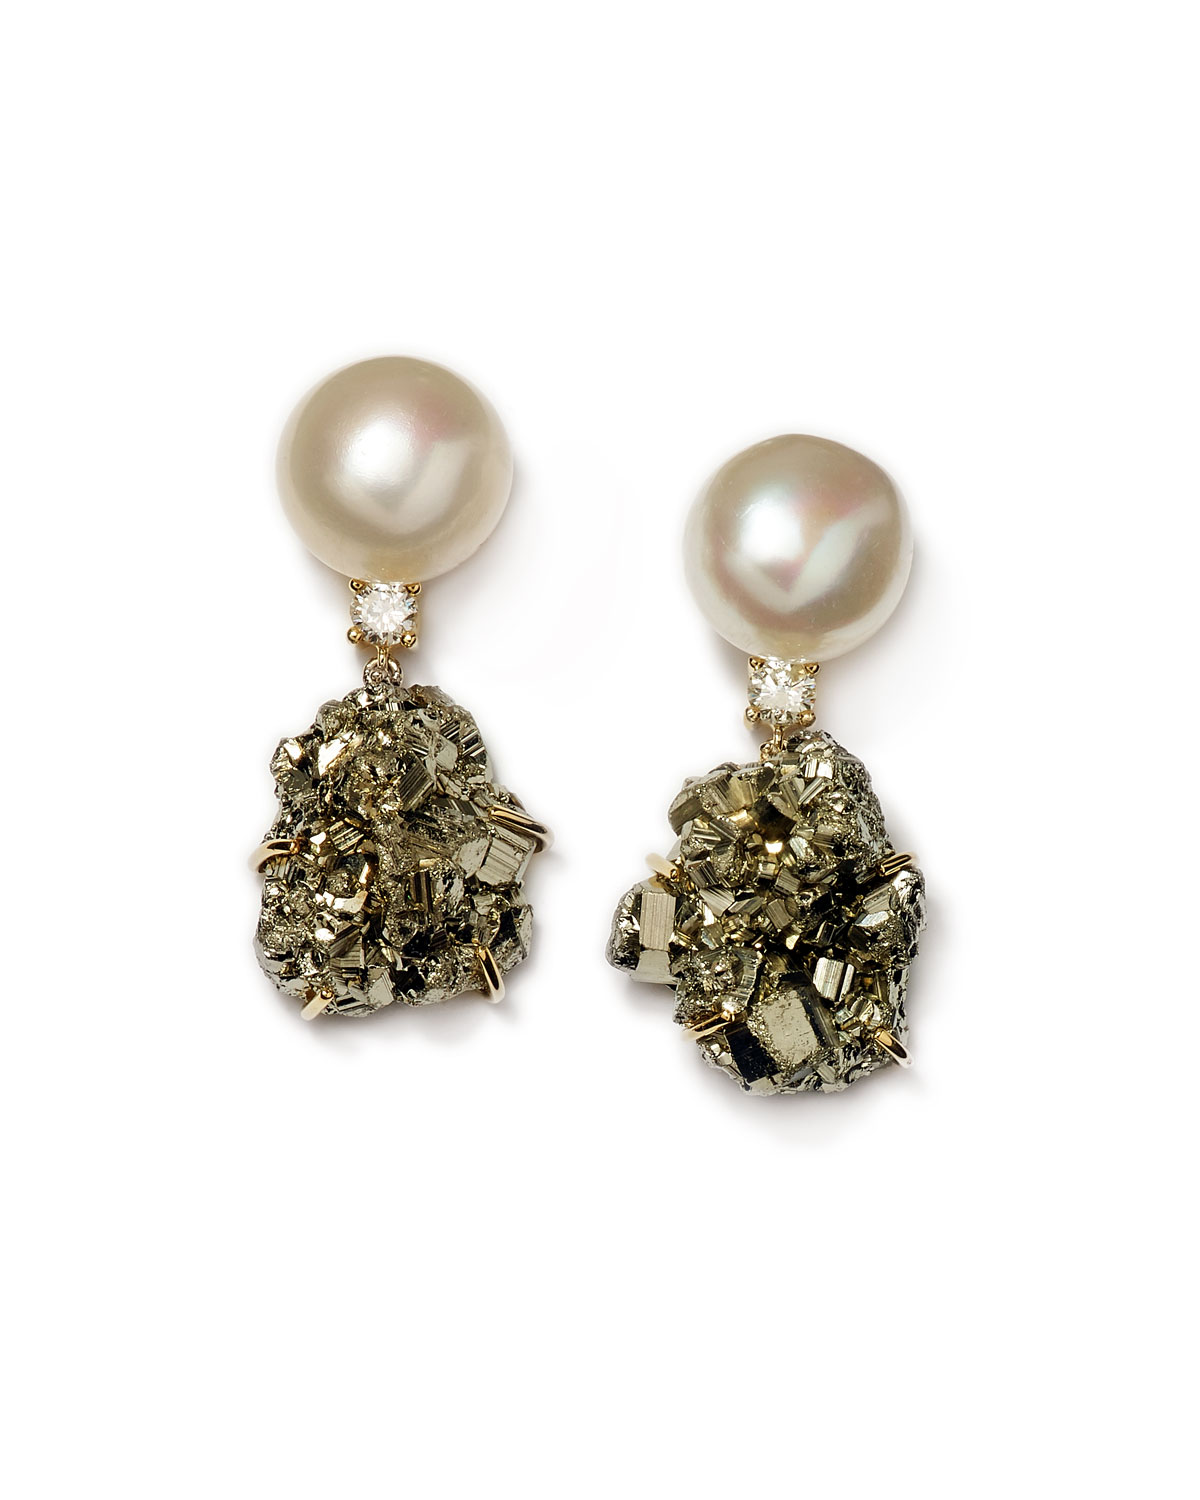 Jan Leslie Ties 18K BESPOKE TRIBAL LUXURY 2-TIER EARRING WITH PEARL, PYRITE, AND DIAMOND